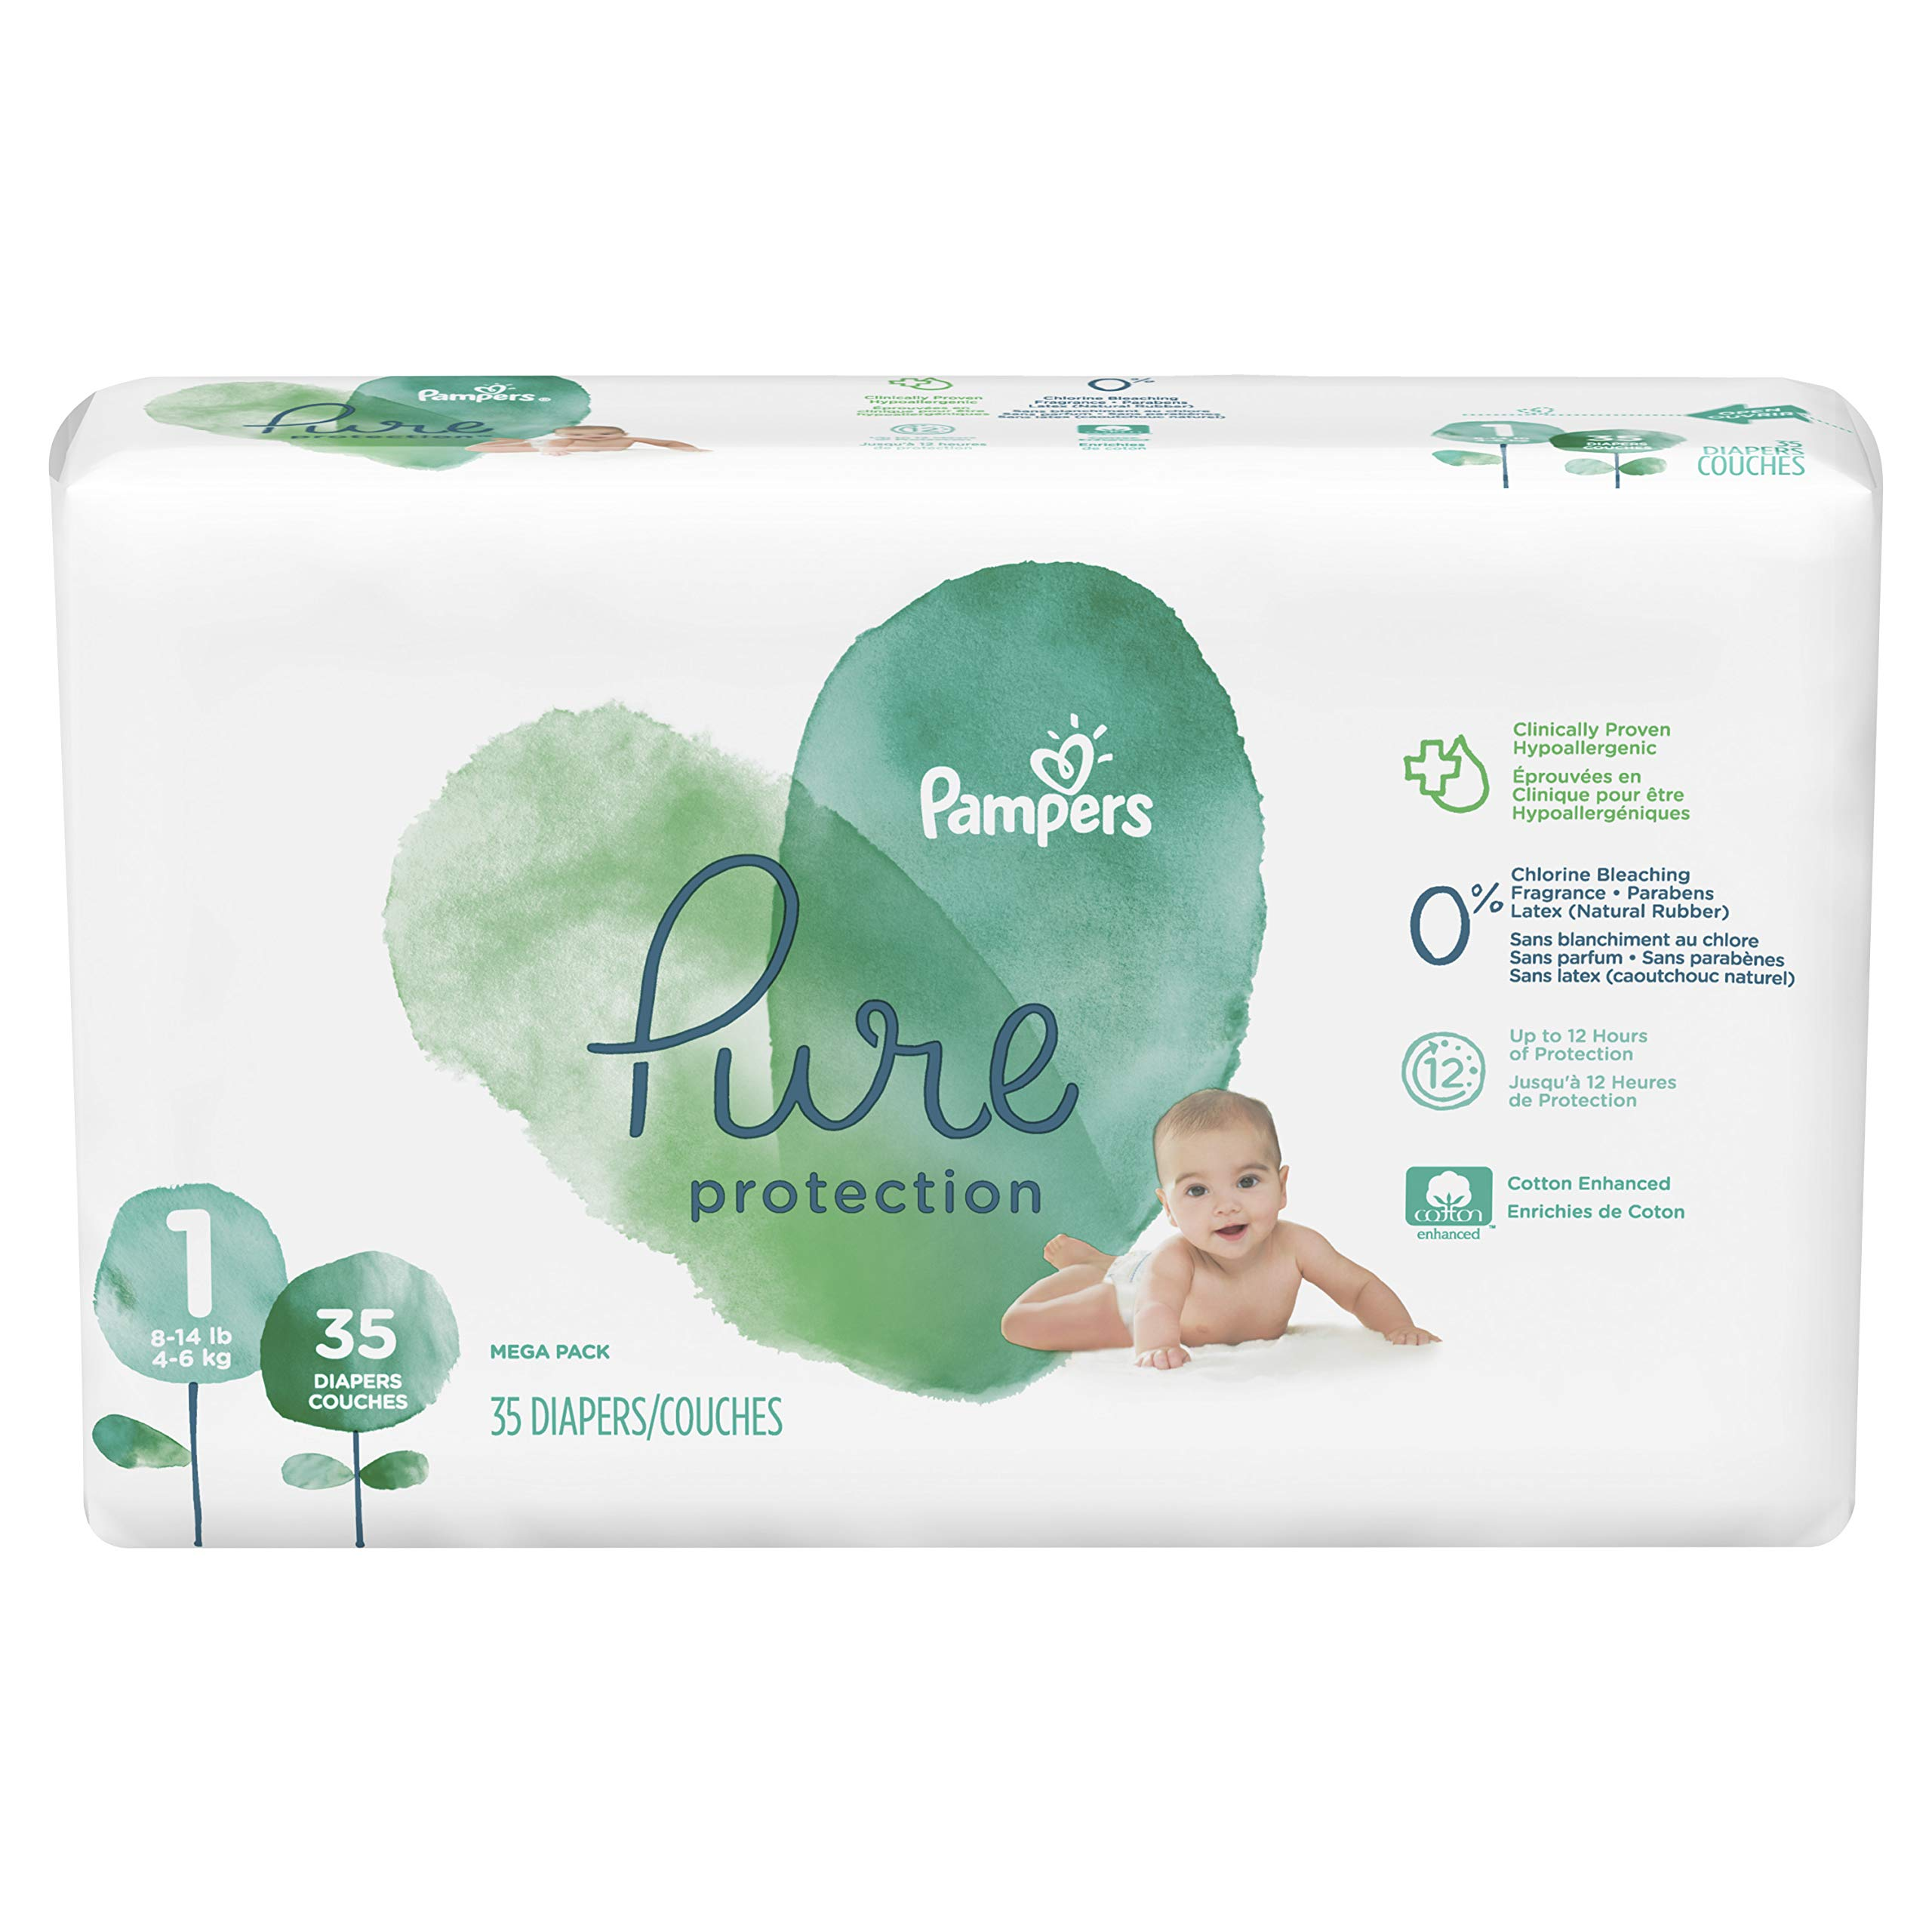 Diapers Newborn/Size 1 (8-14 lb), 35 Count - Pampers Pure Disposable Baby Diapers, Hypoallergenic and Unscented Protection by Pampers